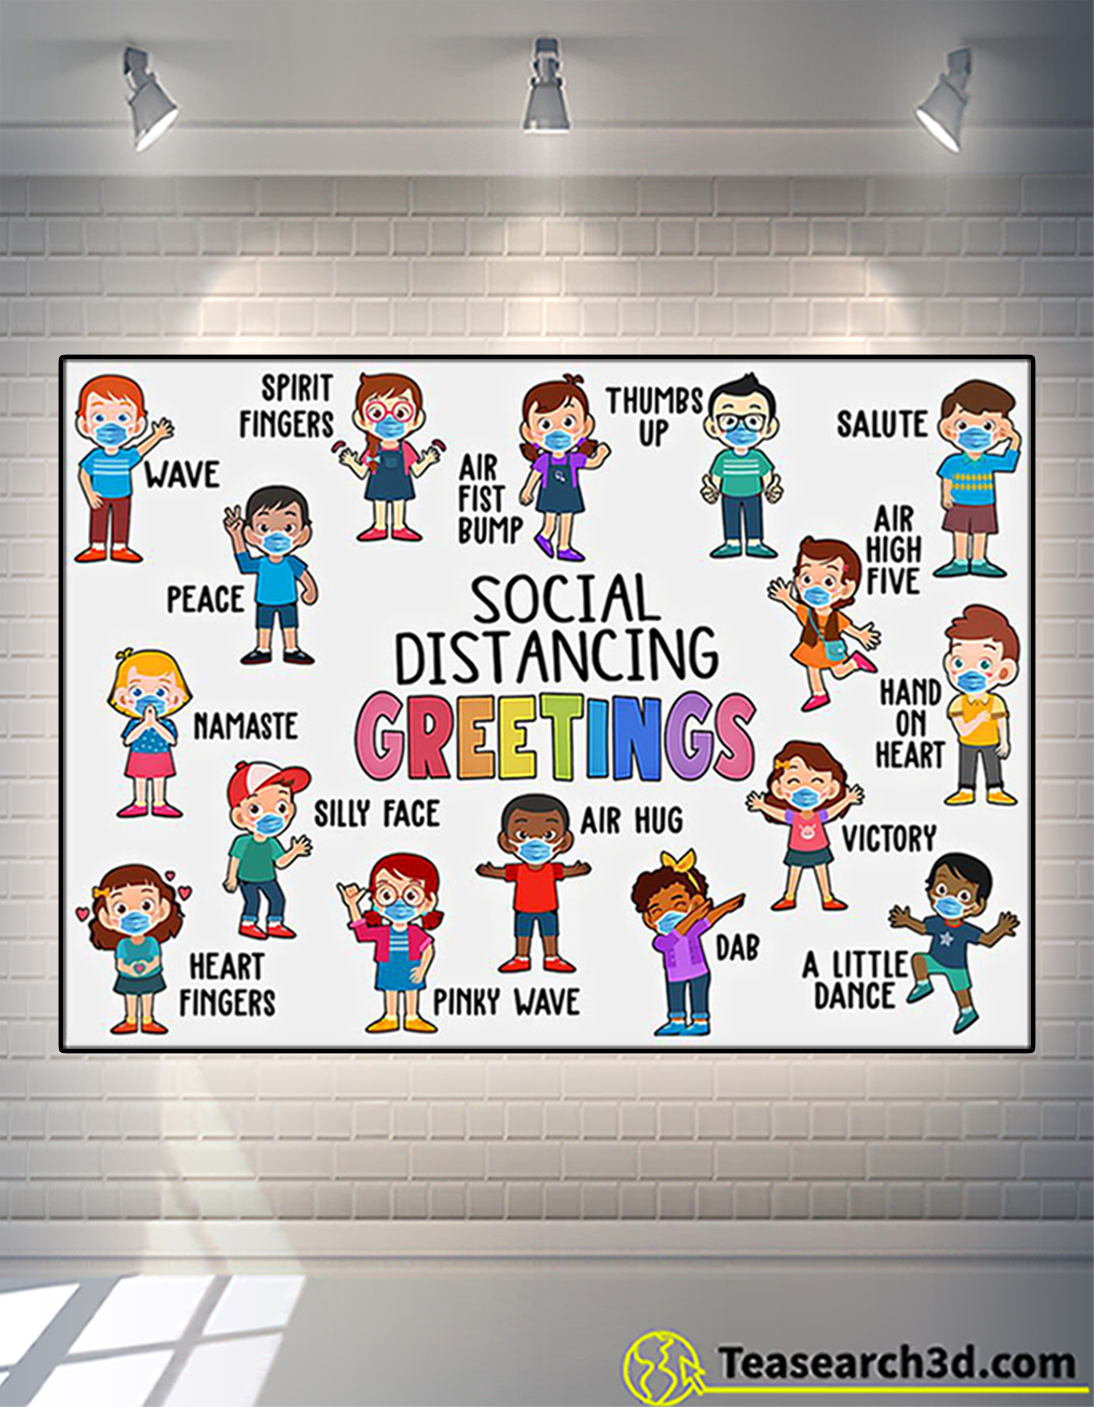 Classroom Social Distancing Greetings Poster A2